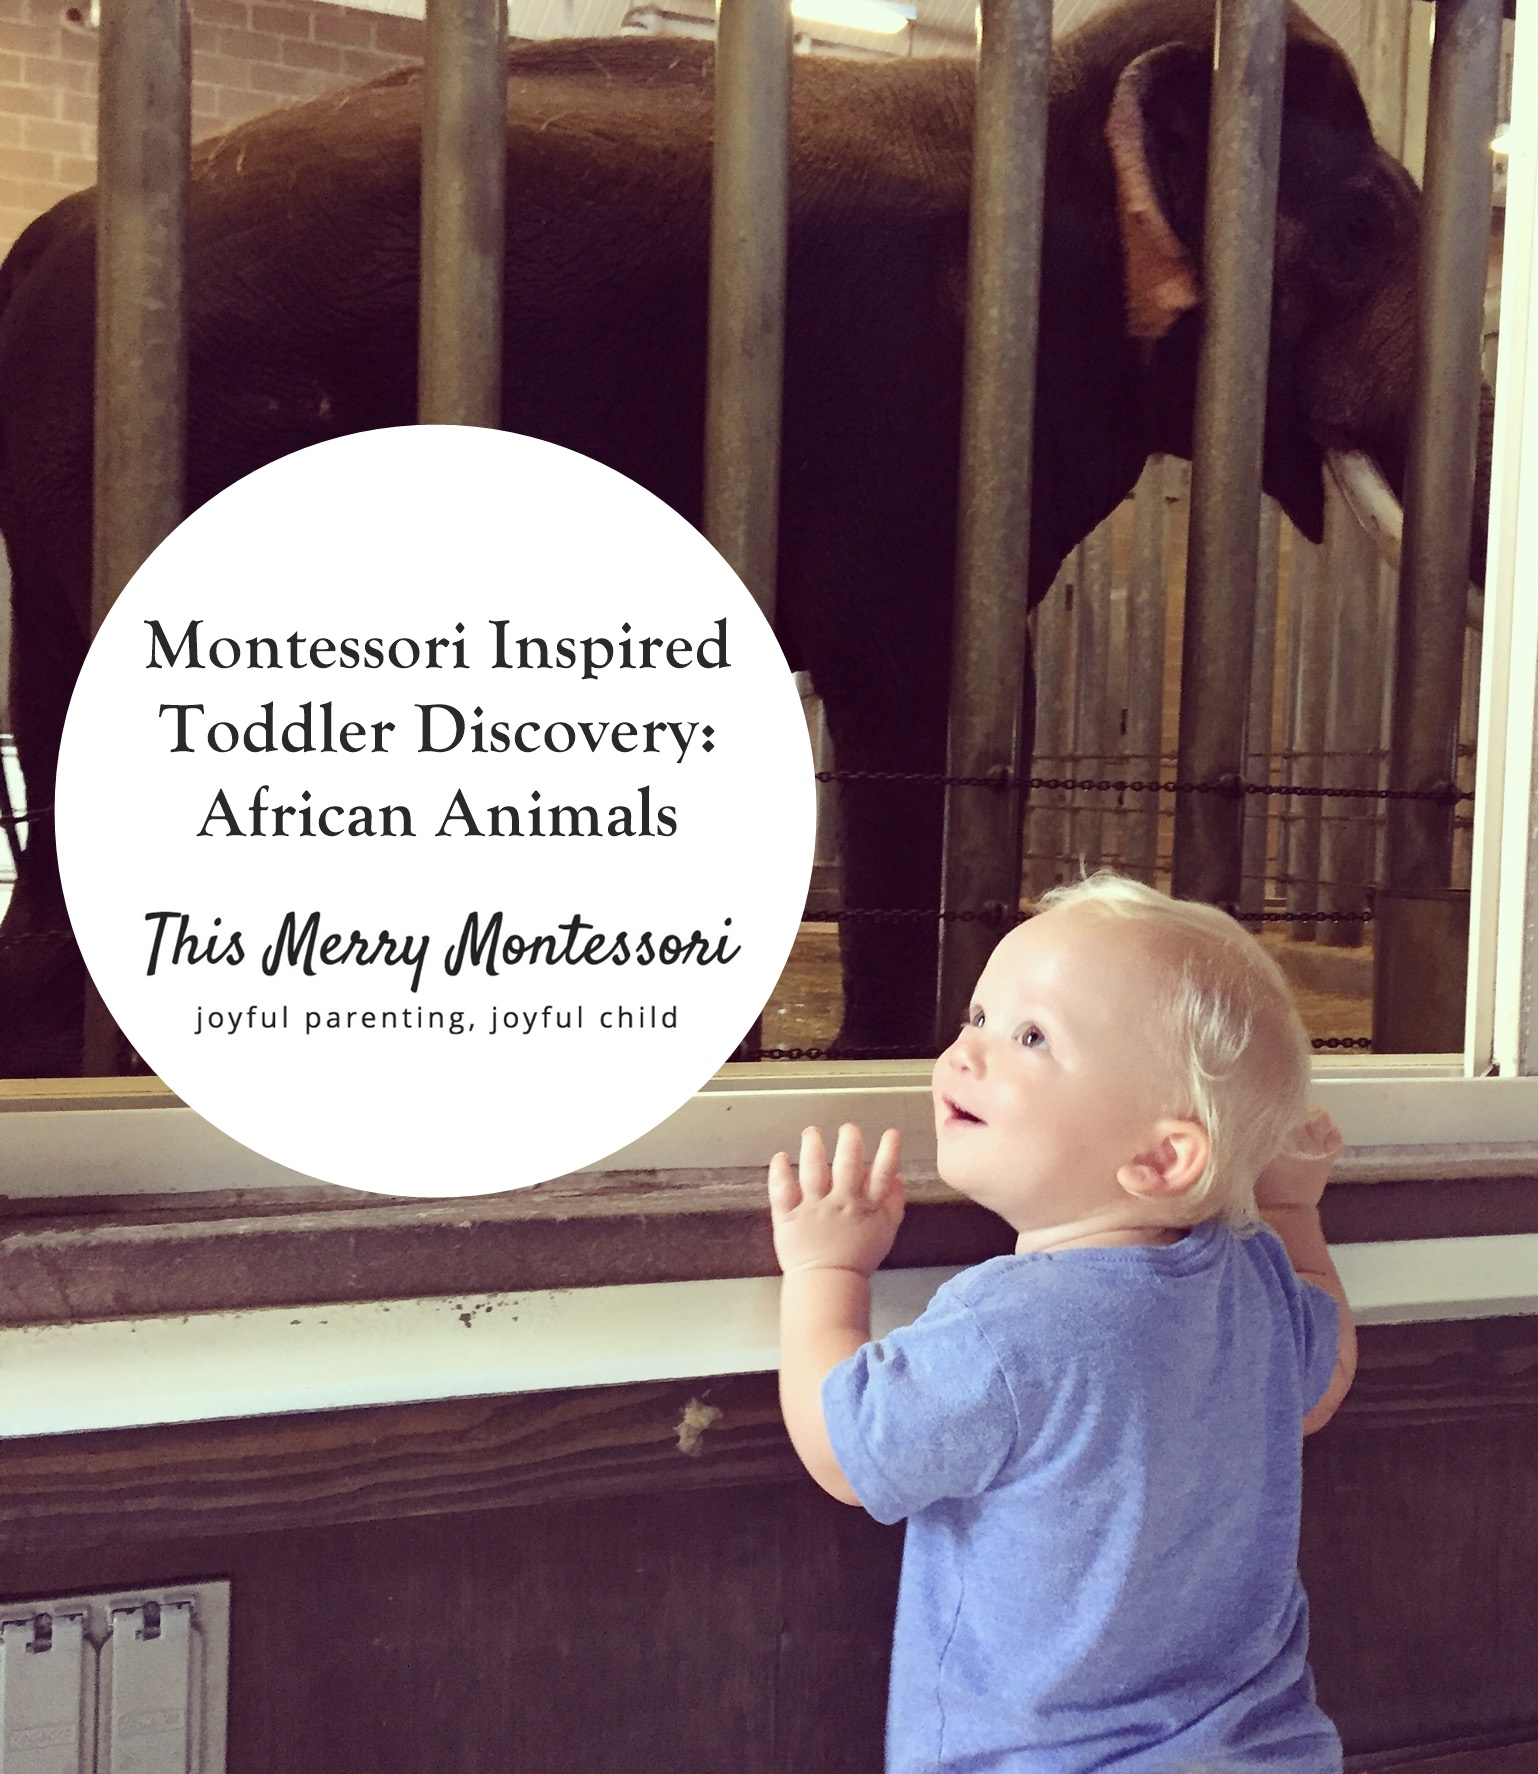 Montessori Inspired Toddler Discovery African Animals 2--TMM